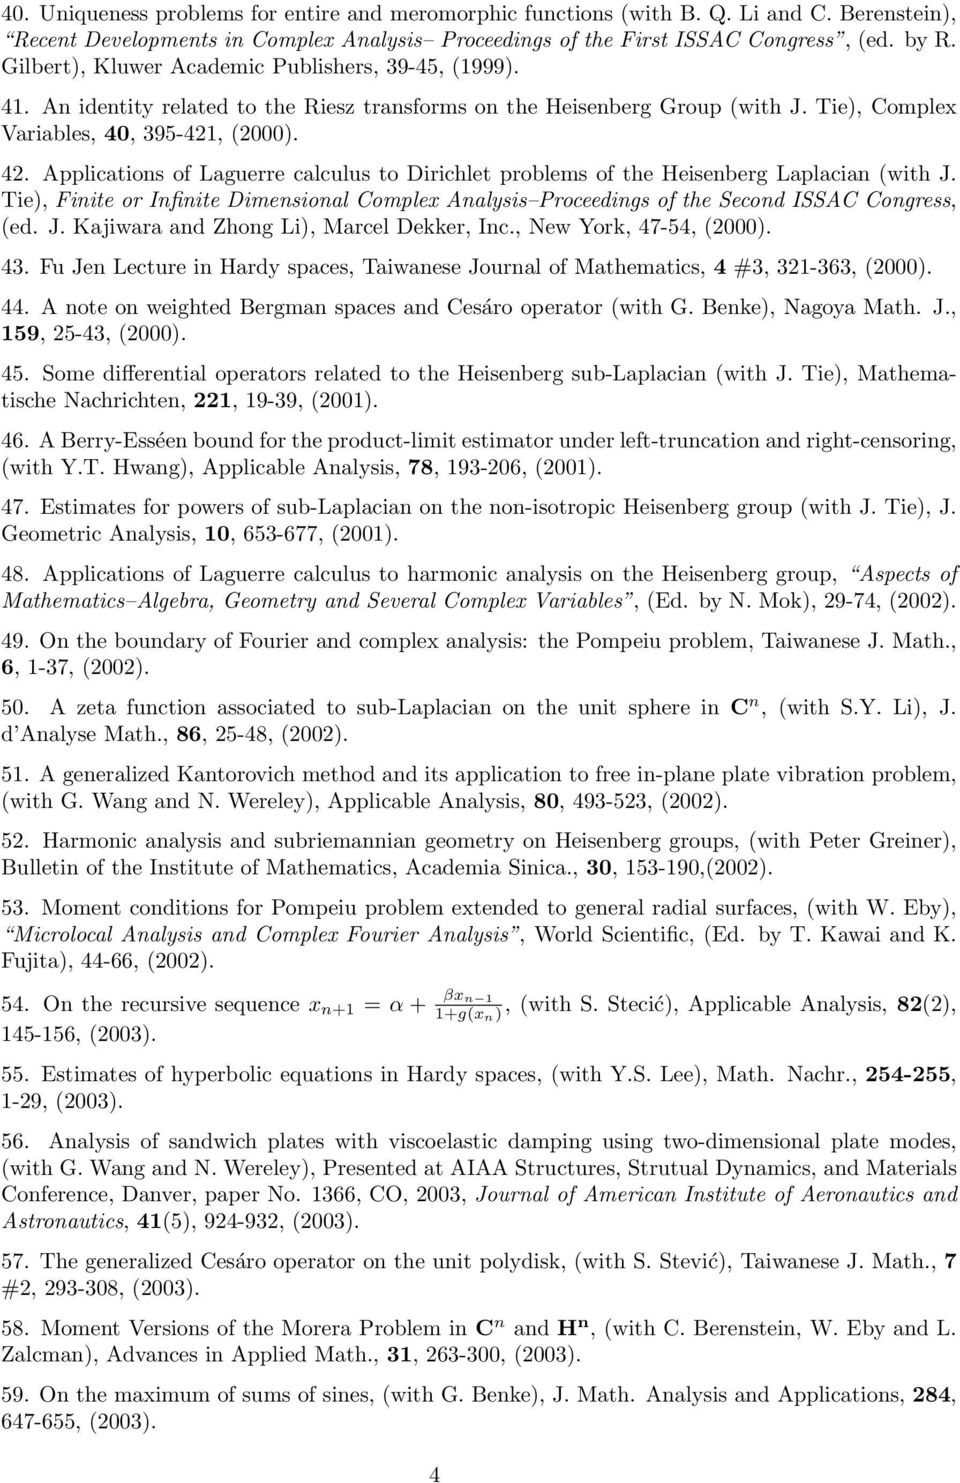 Applications of Laguerre calculus to Dirichlet problems of the Heisenberg Laplacian (with J. Tie), Finite or Infinite Dimensional Complex Analysis Proceedings of the Second ISSAC Congress, (ed. J. Kajiwara and Zhong Li), Marcel Dekker, Inc.